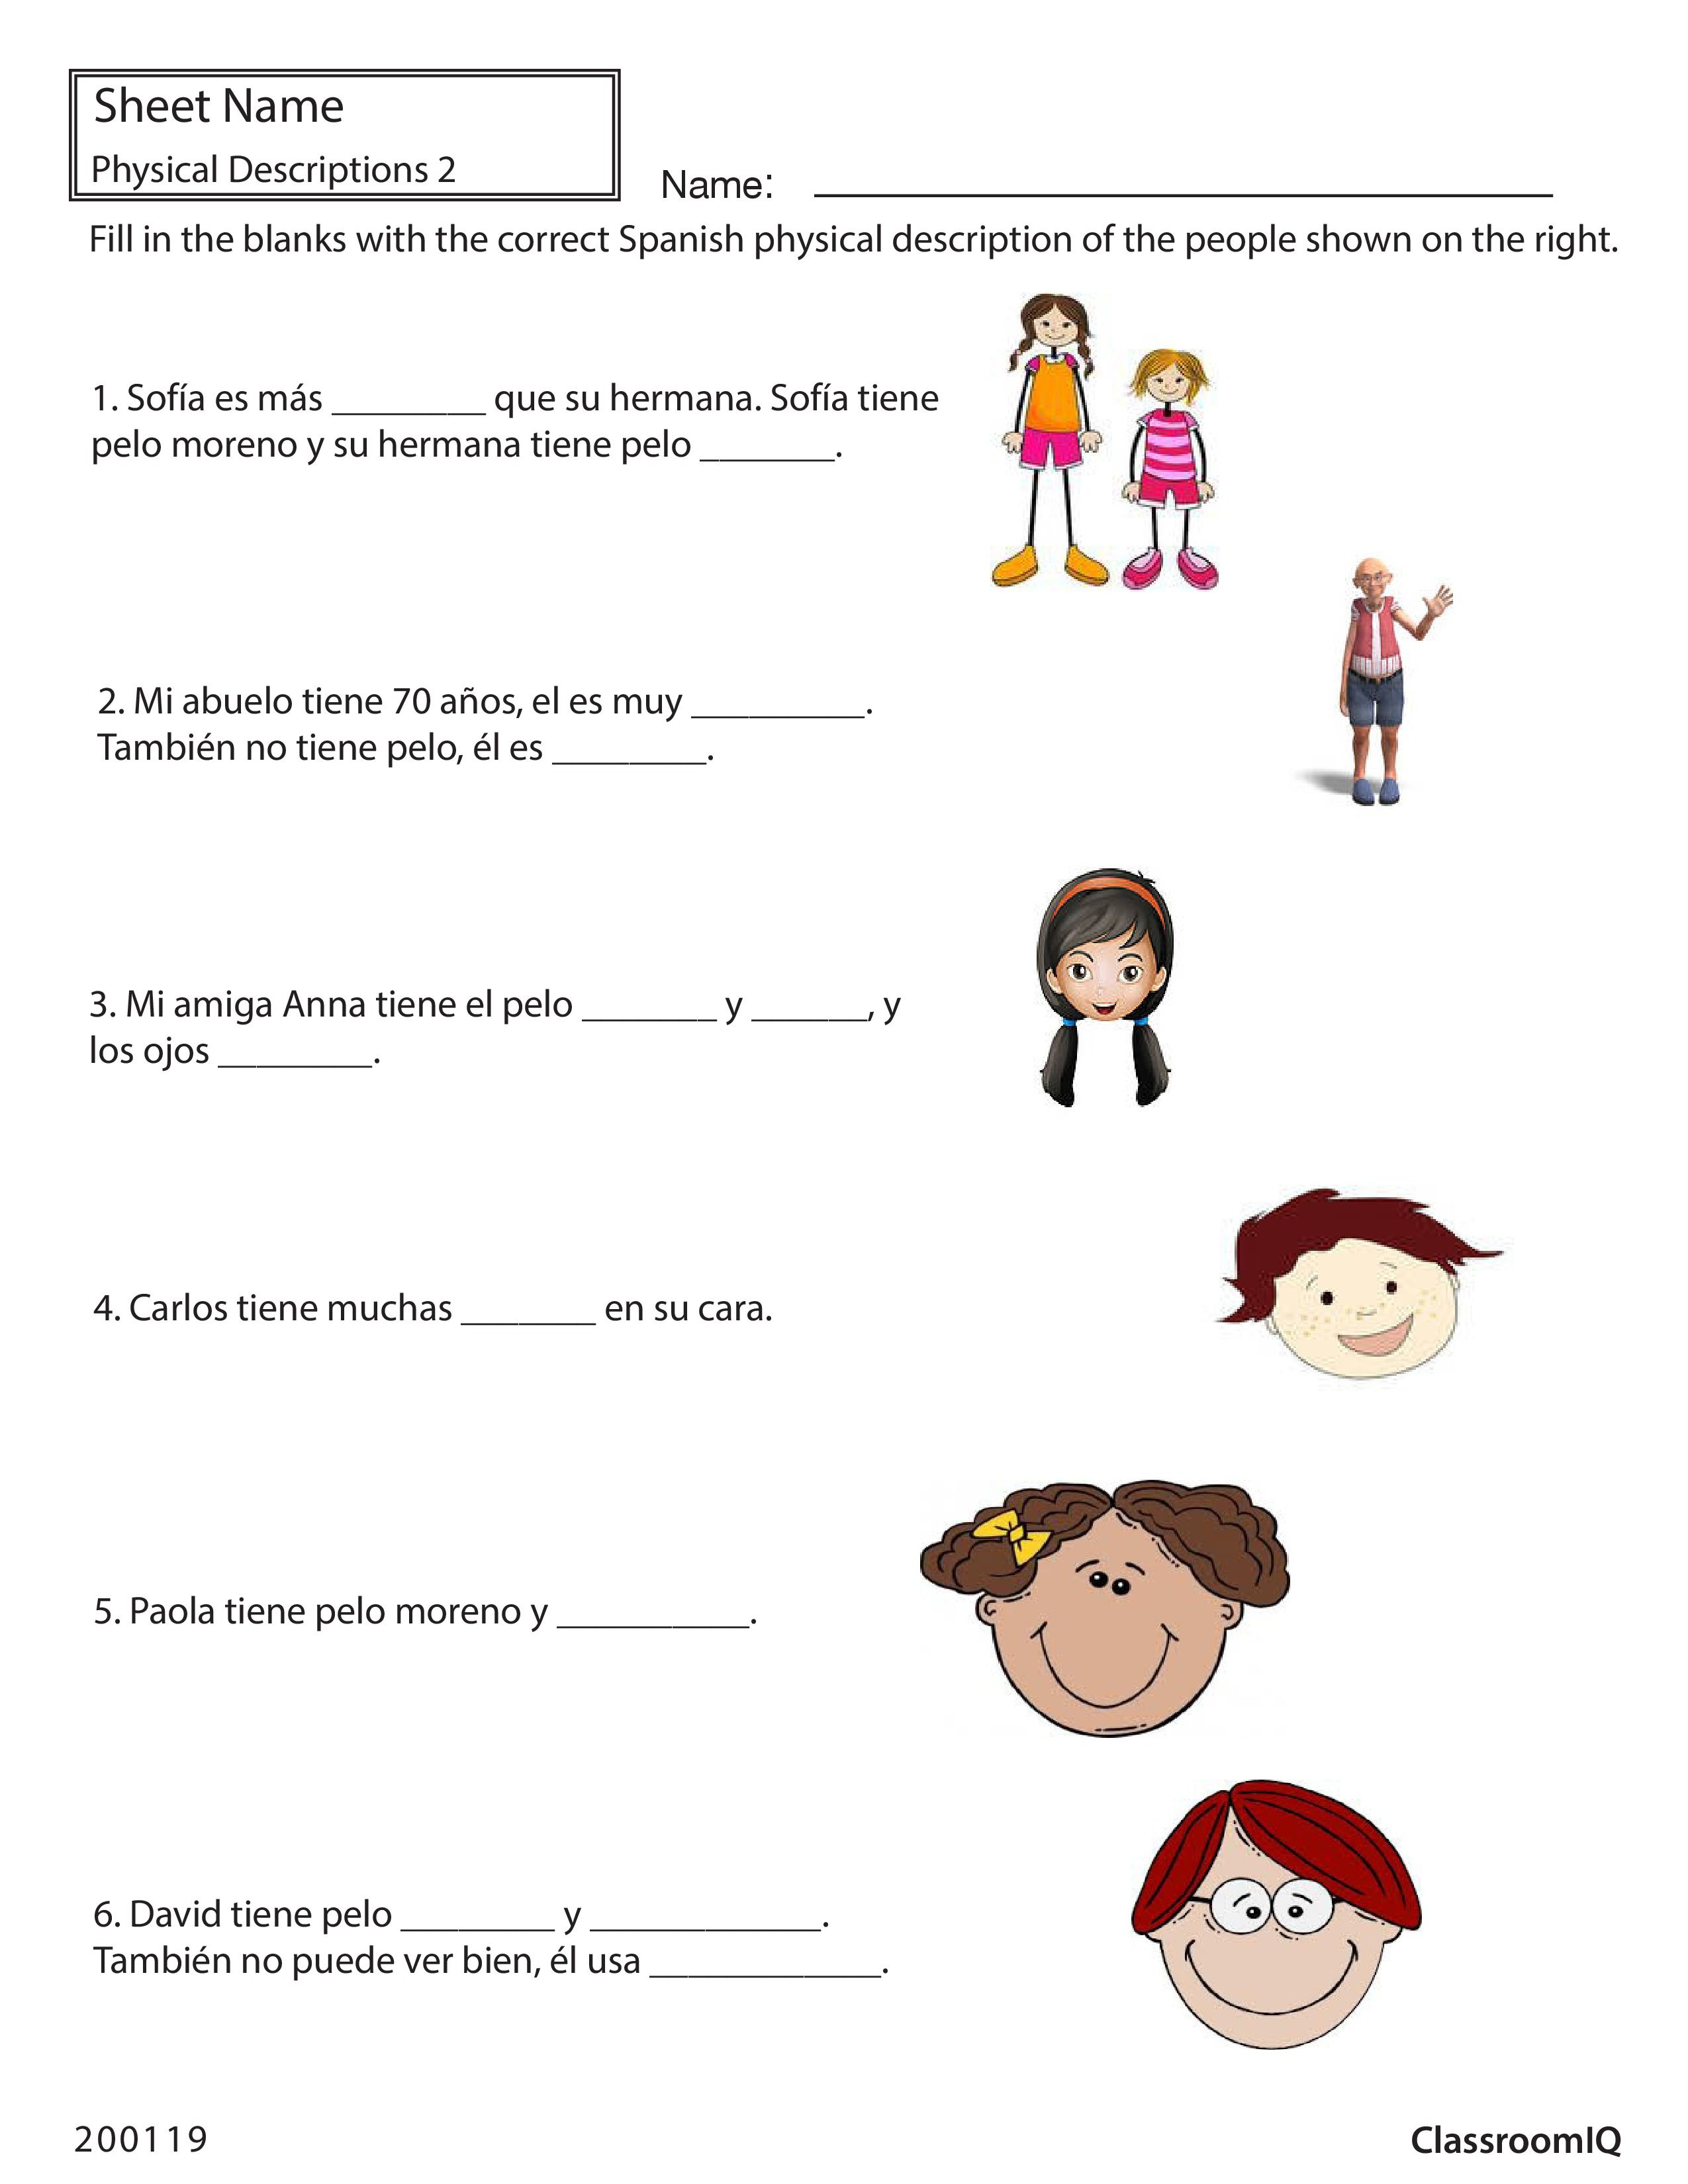 Free Worksheet Beginning Spanish Worksheets spanish classroom objects matching spanishworksheets physical descriptions worksheets learn to make comparisons using muy mas tambien